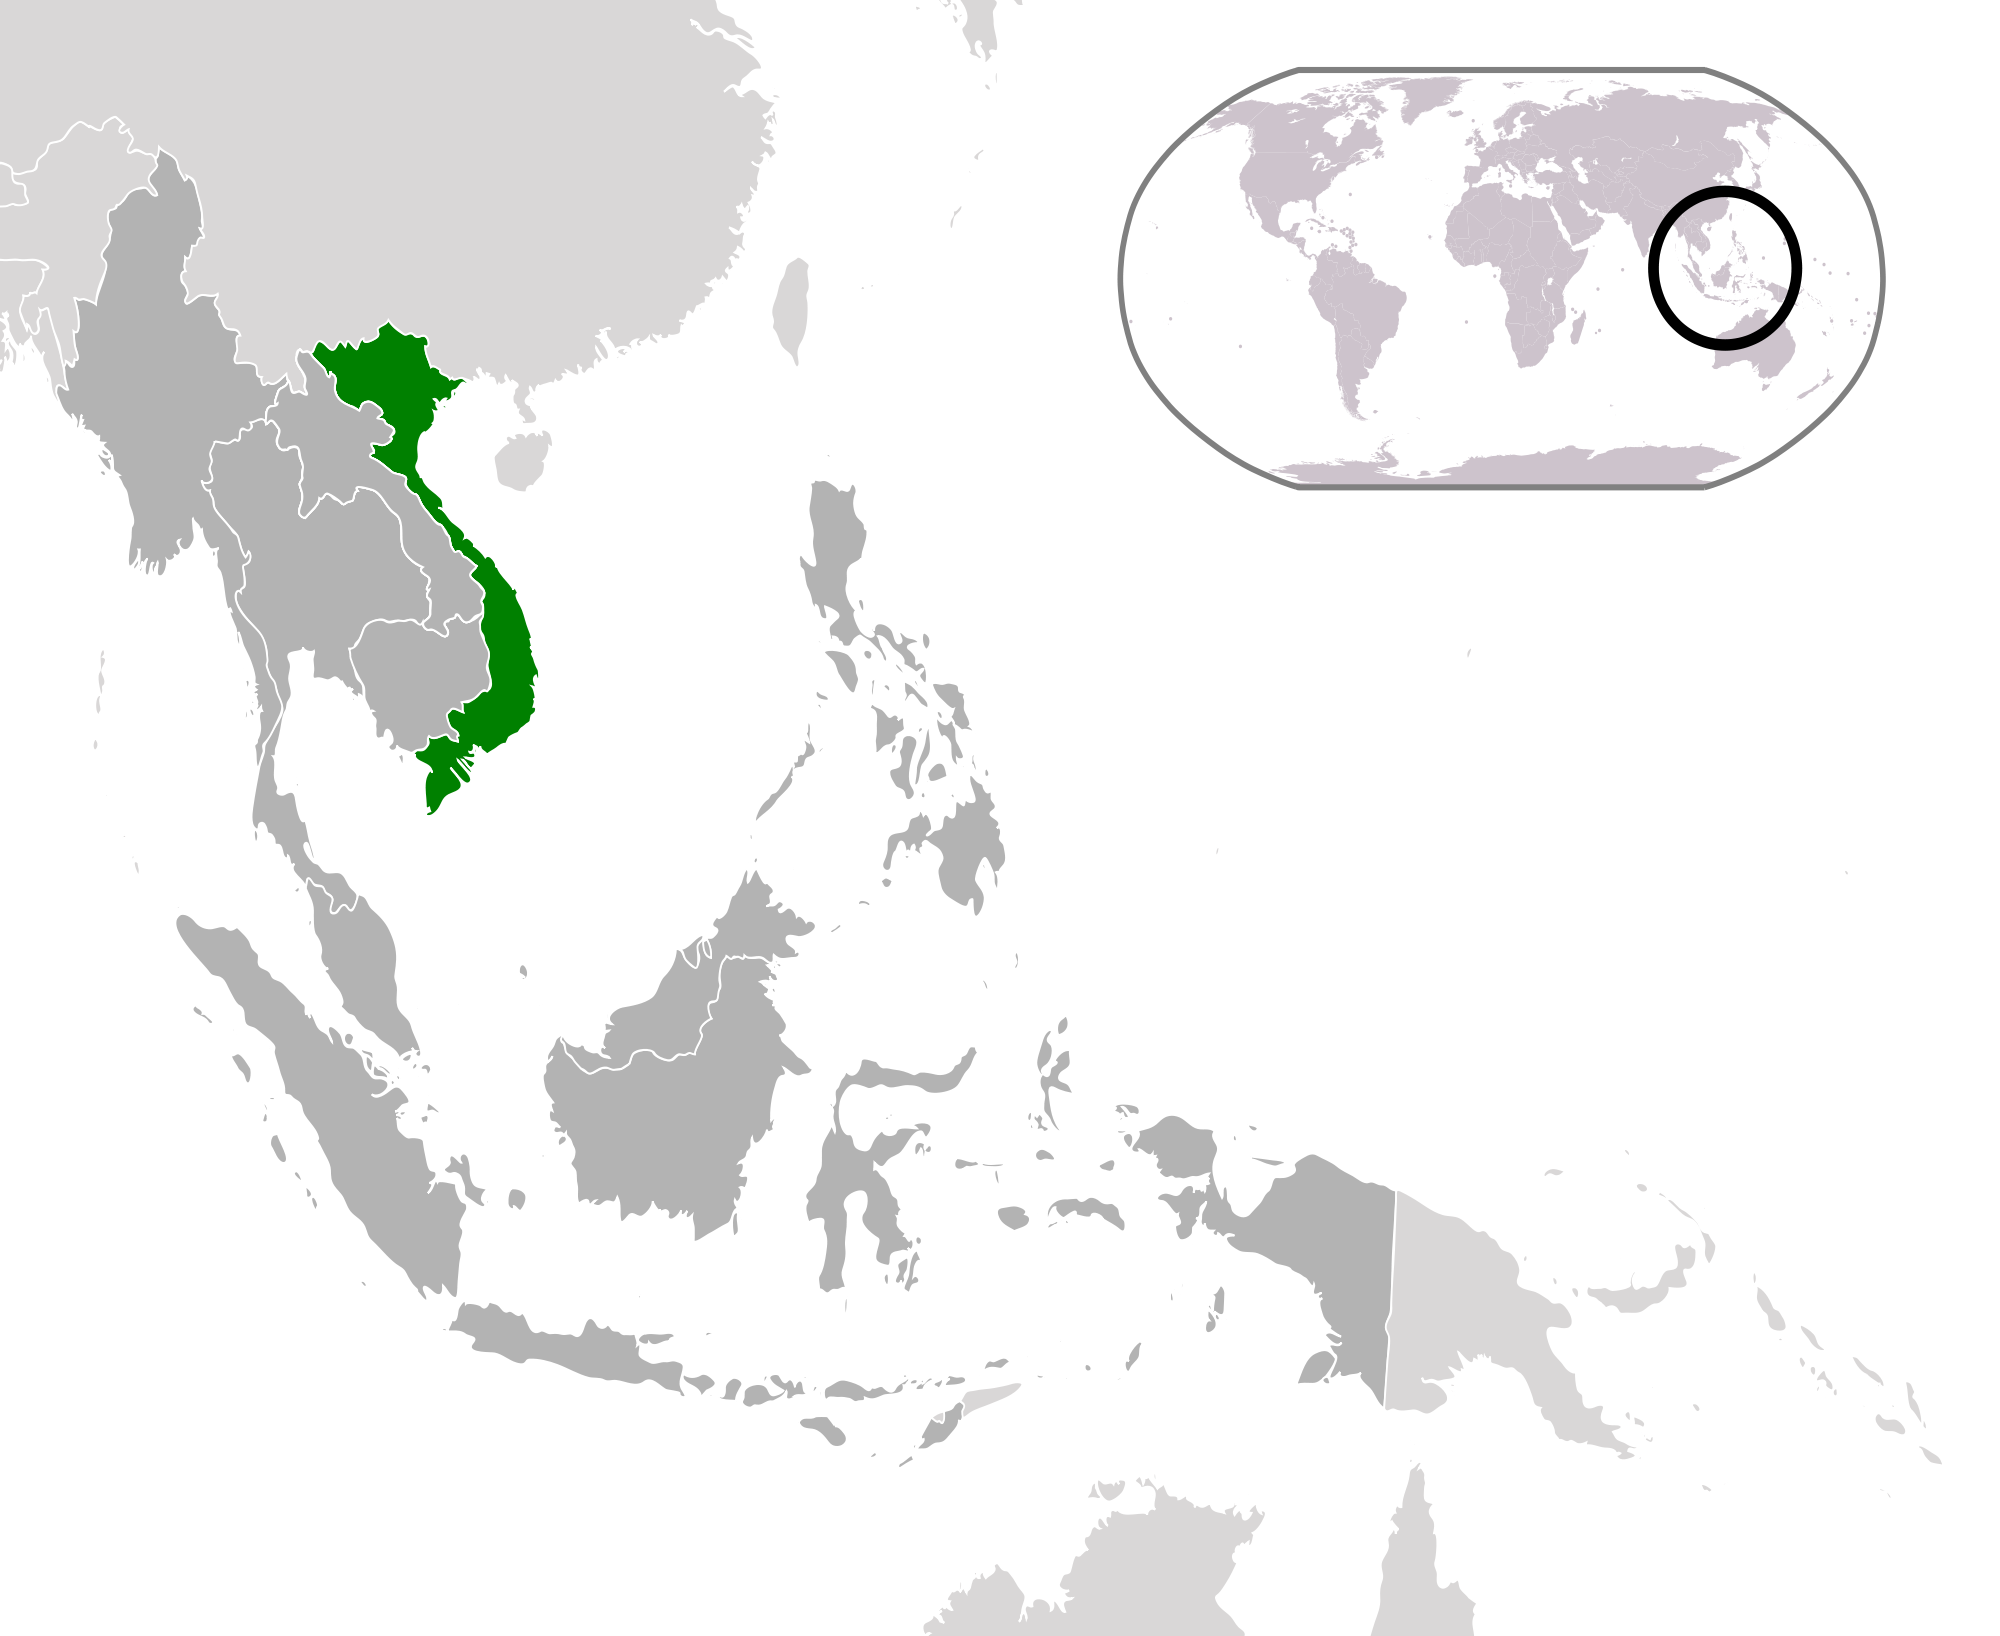 Location Of The Vietnam In The World Map